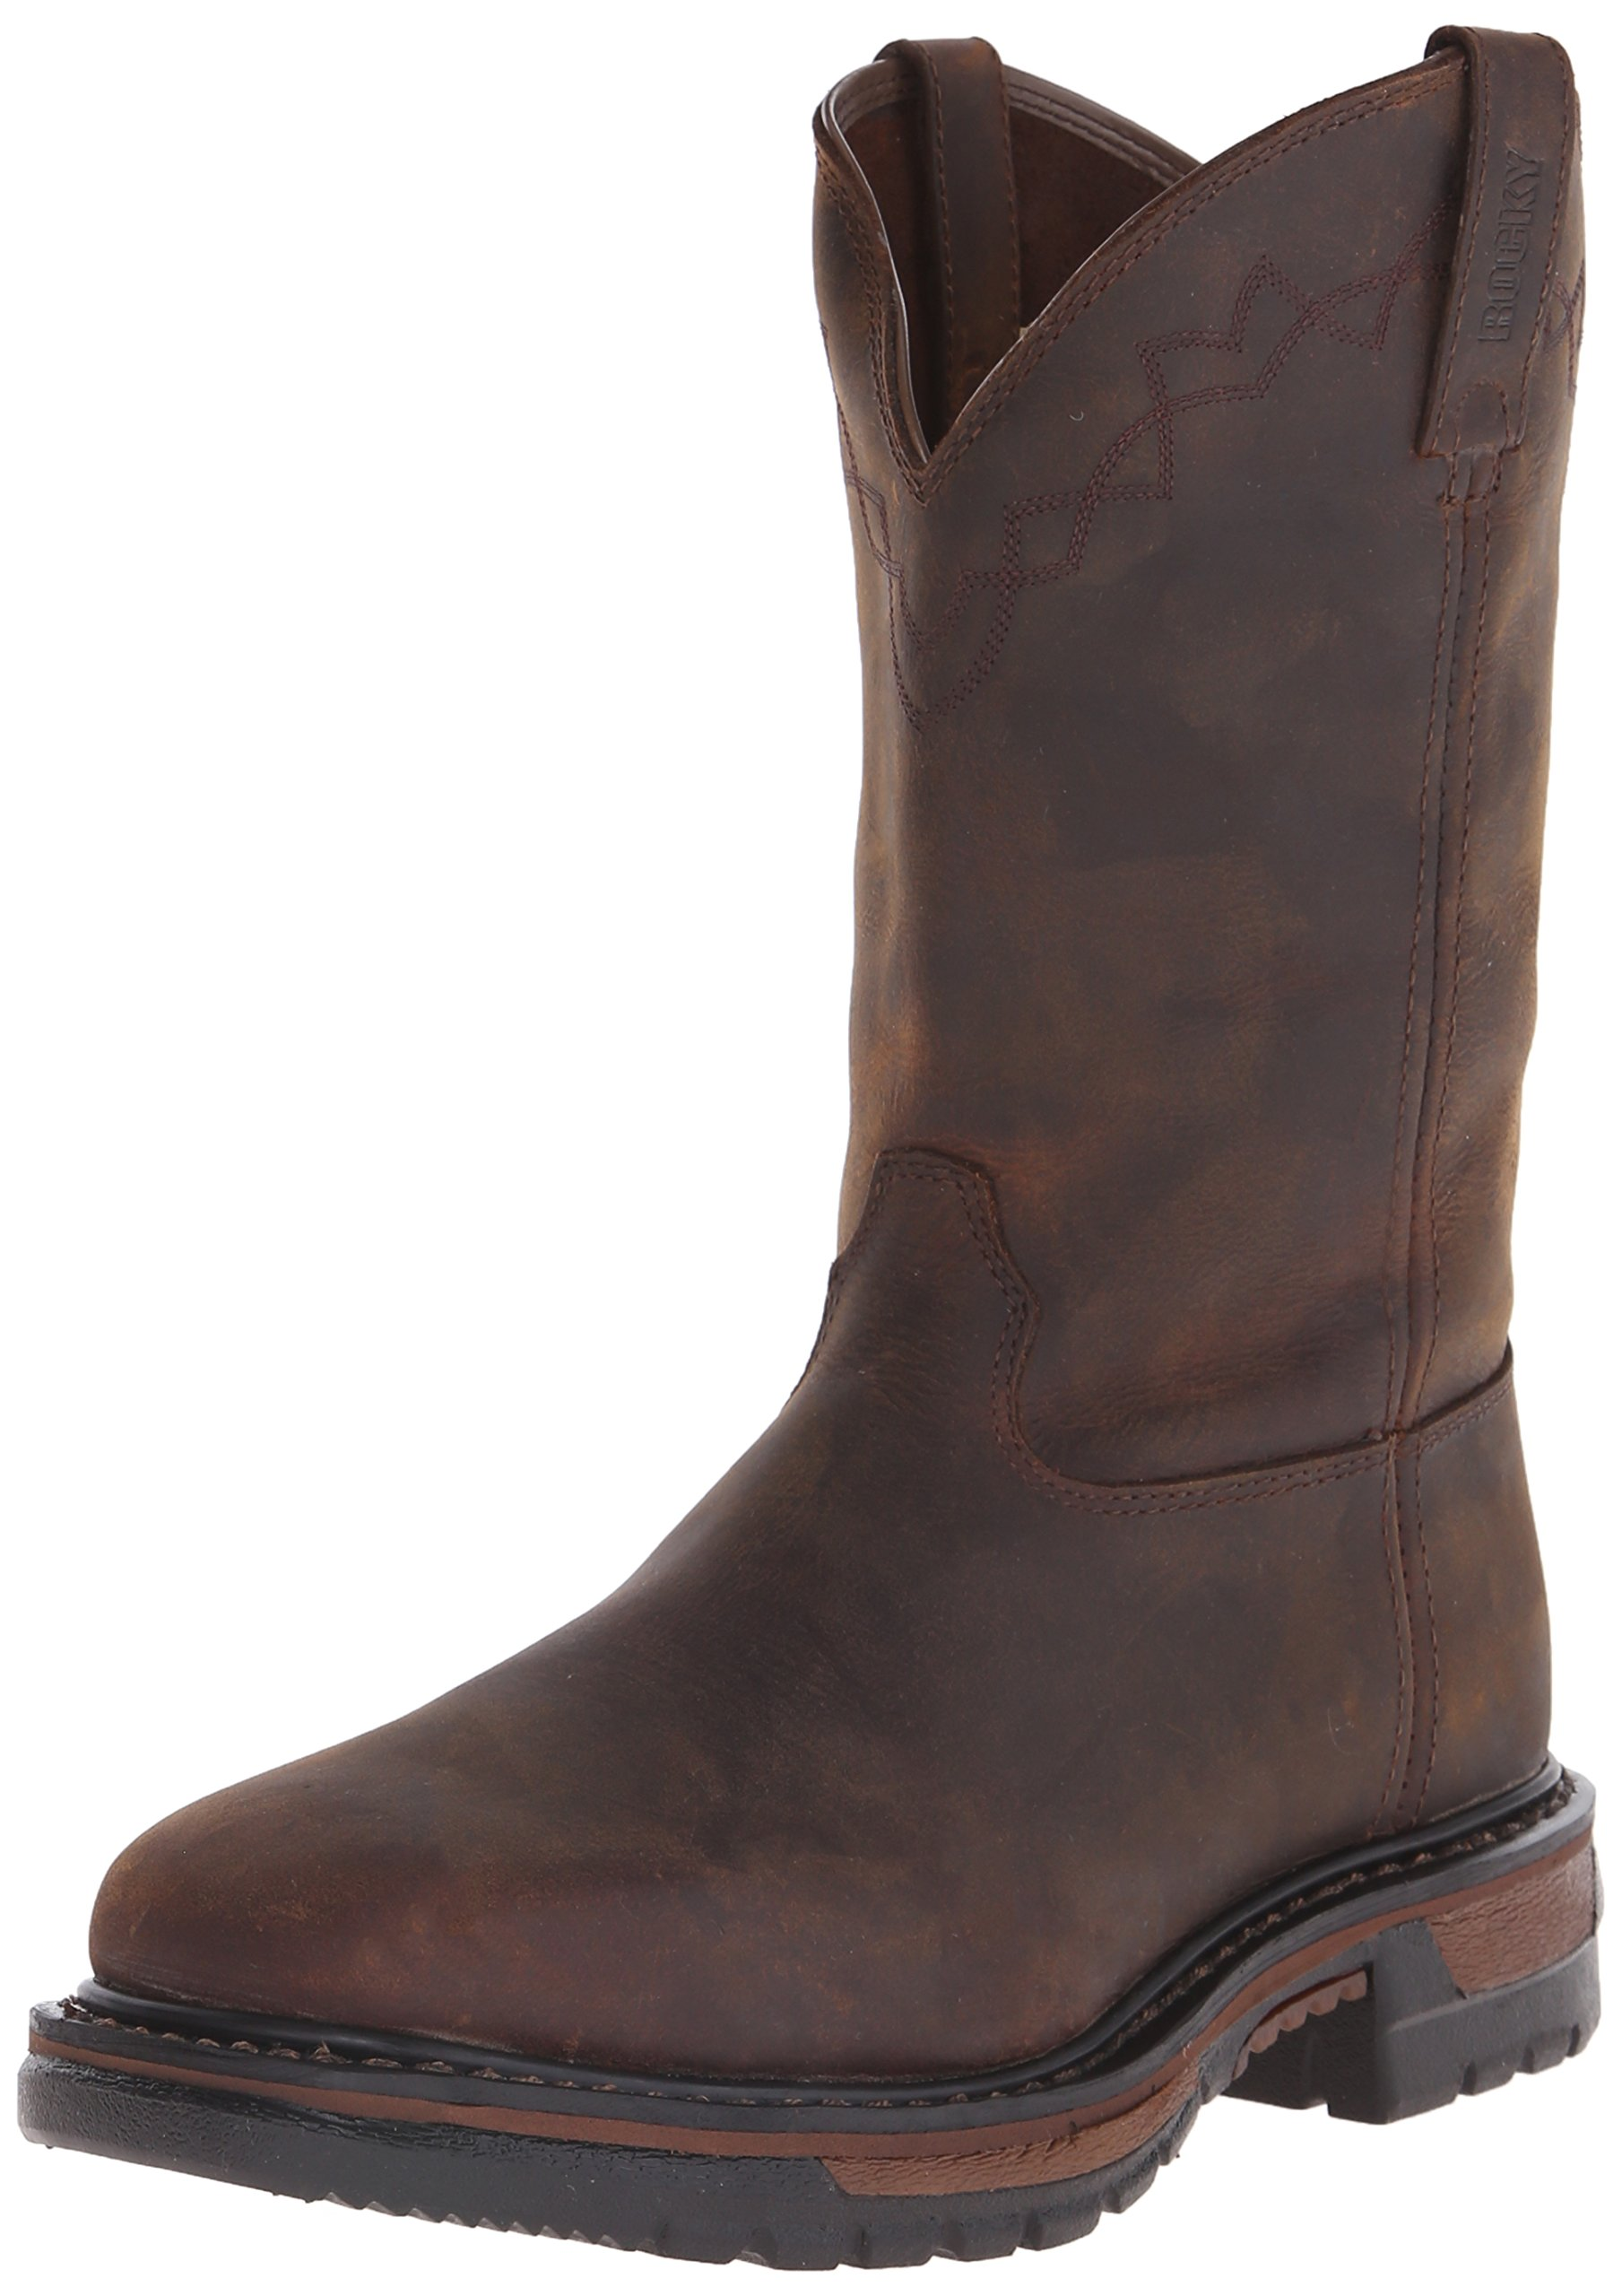 Rocky Men's RKW0117 Boot, Dark Brown, 10 M US